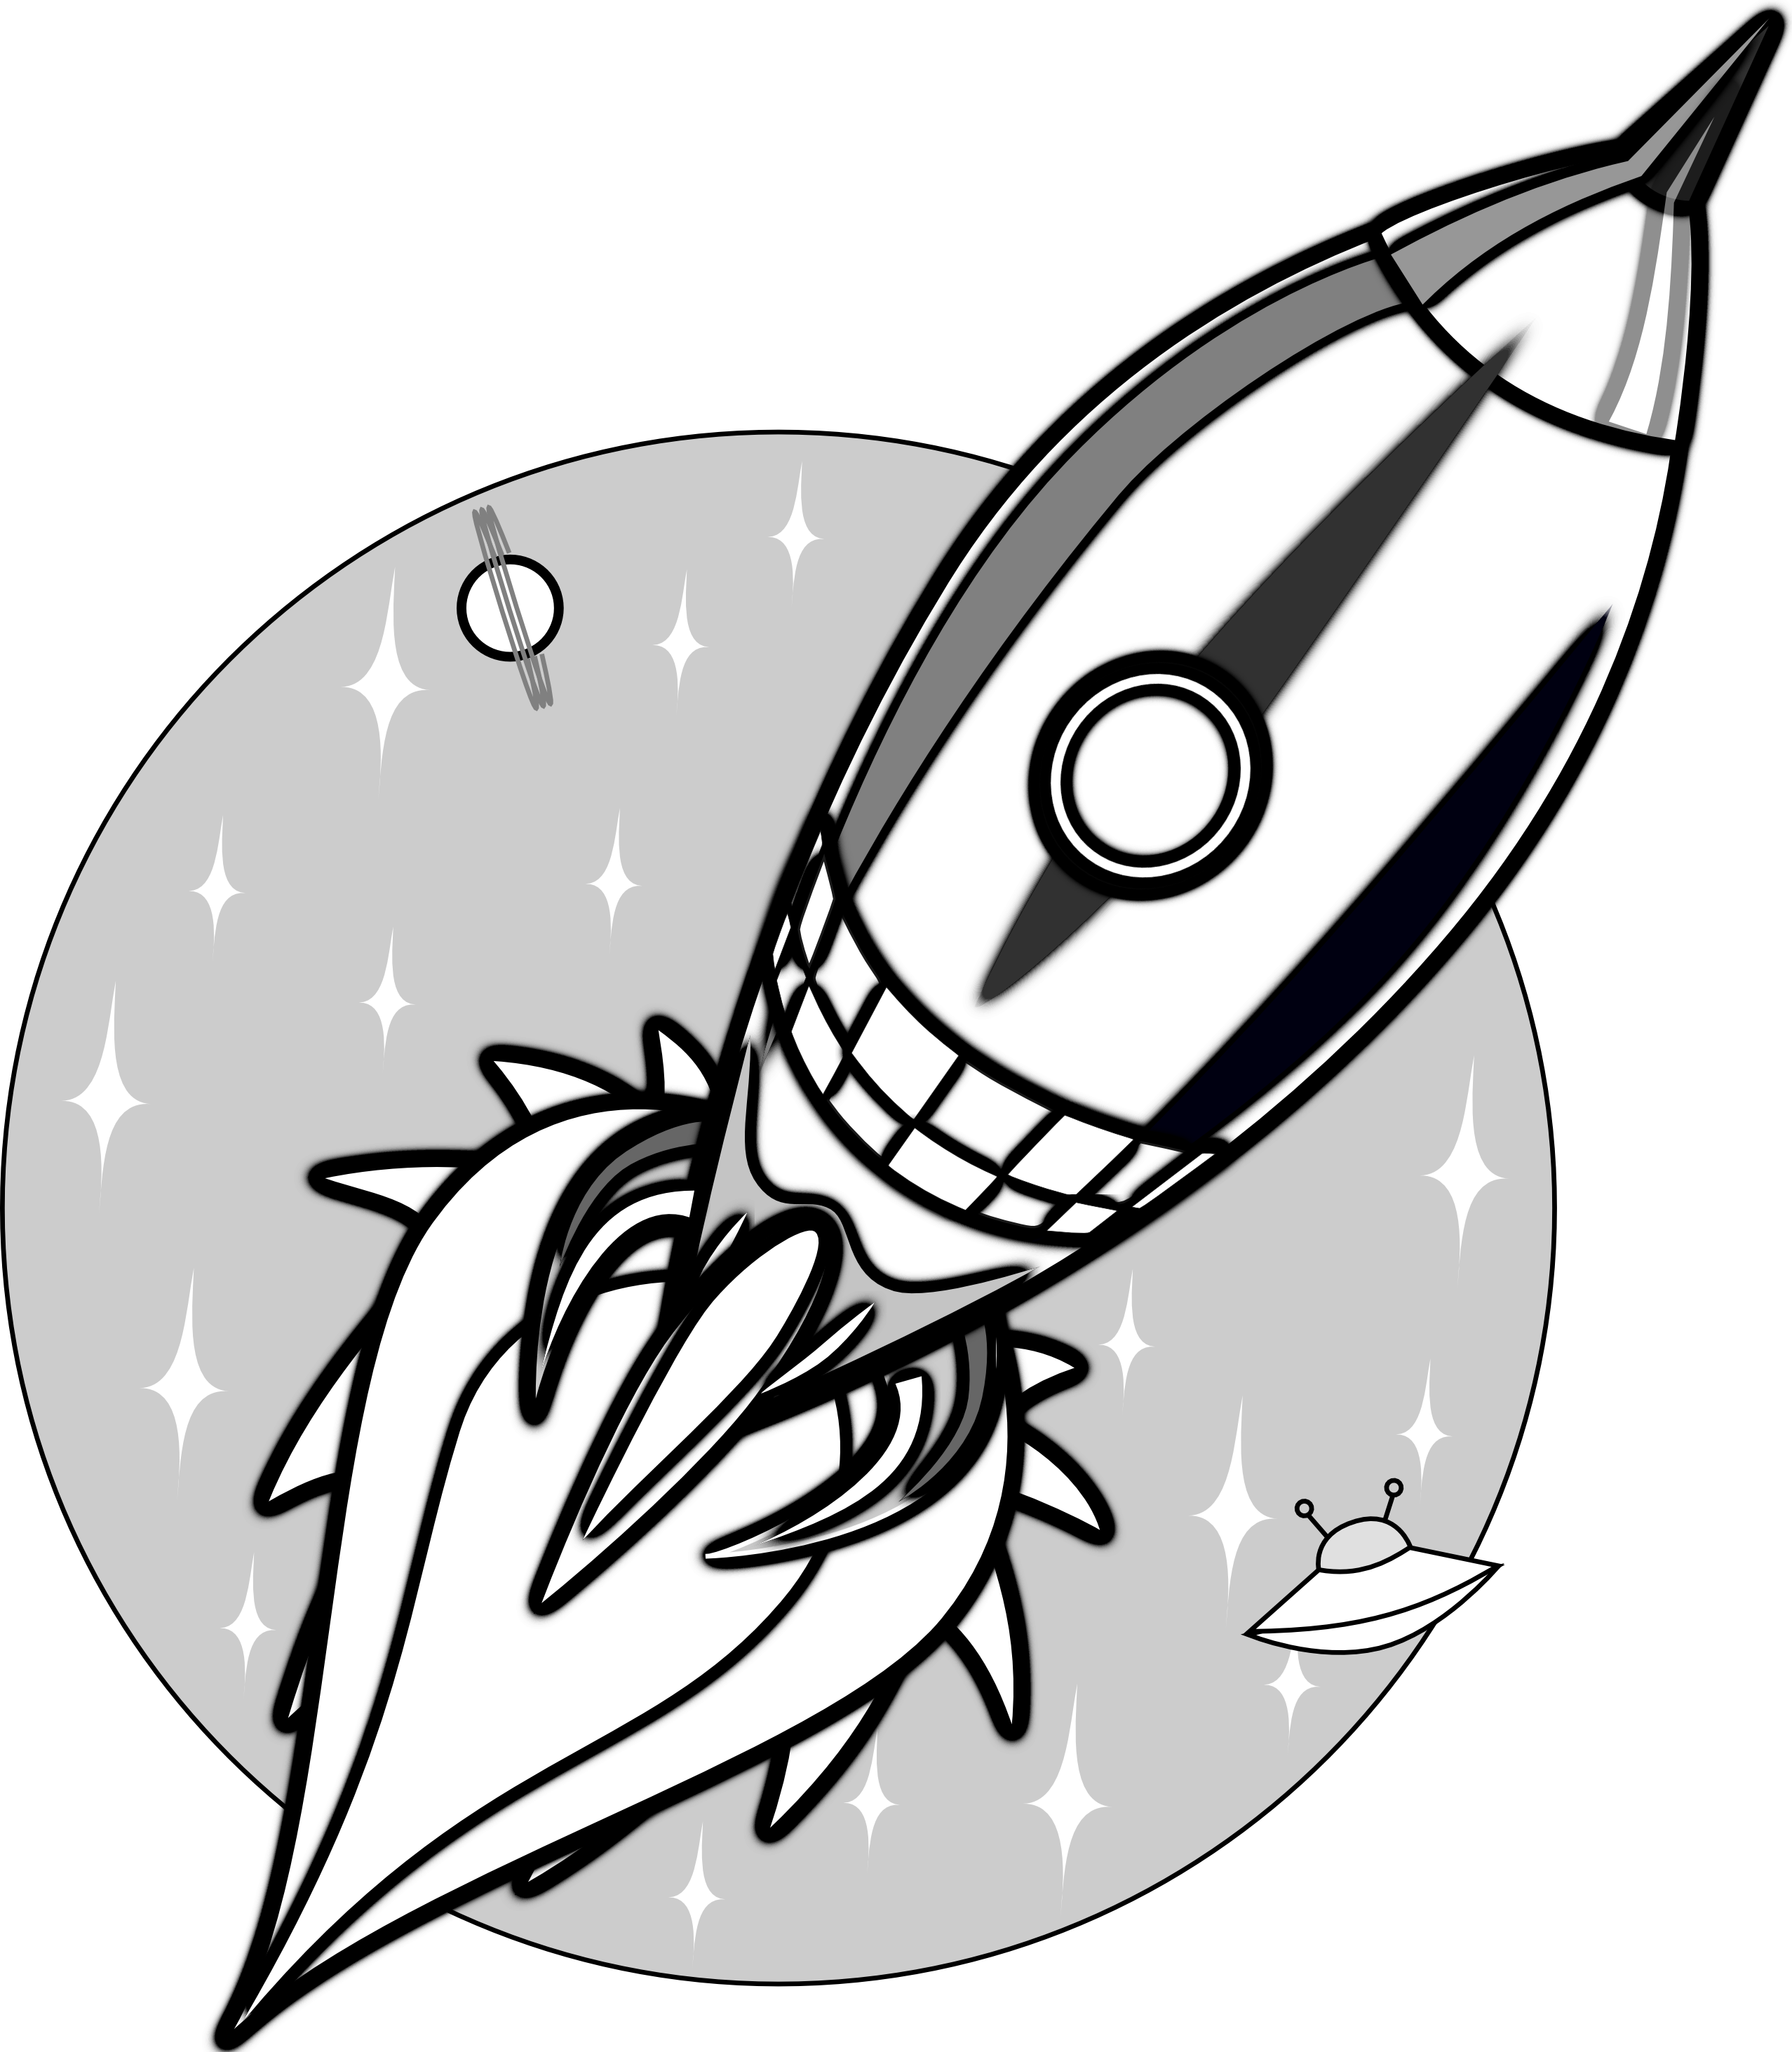 Space and tattoo page. Clipart rocket retro rocket